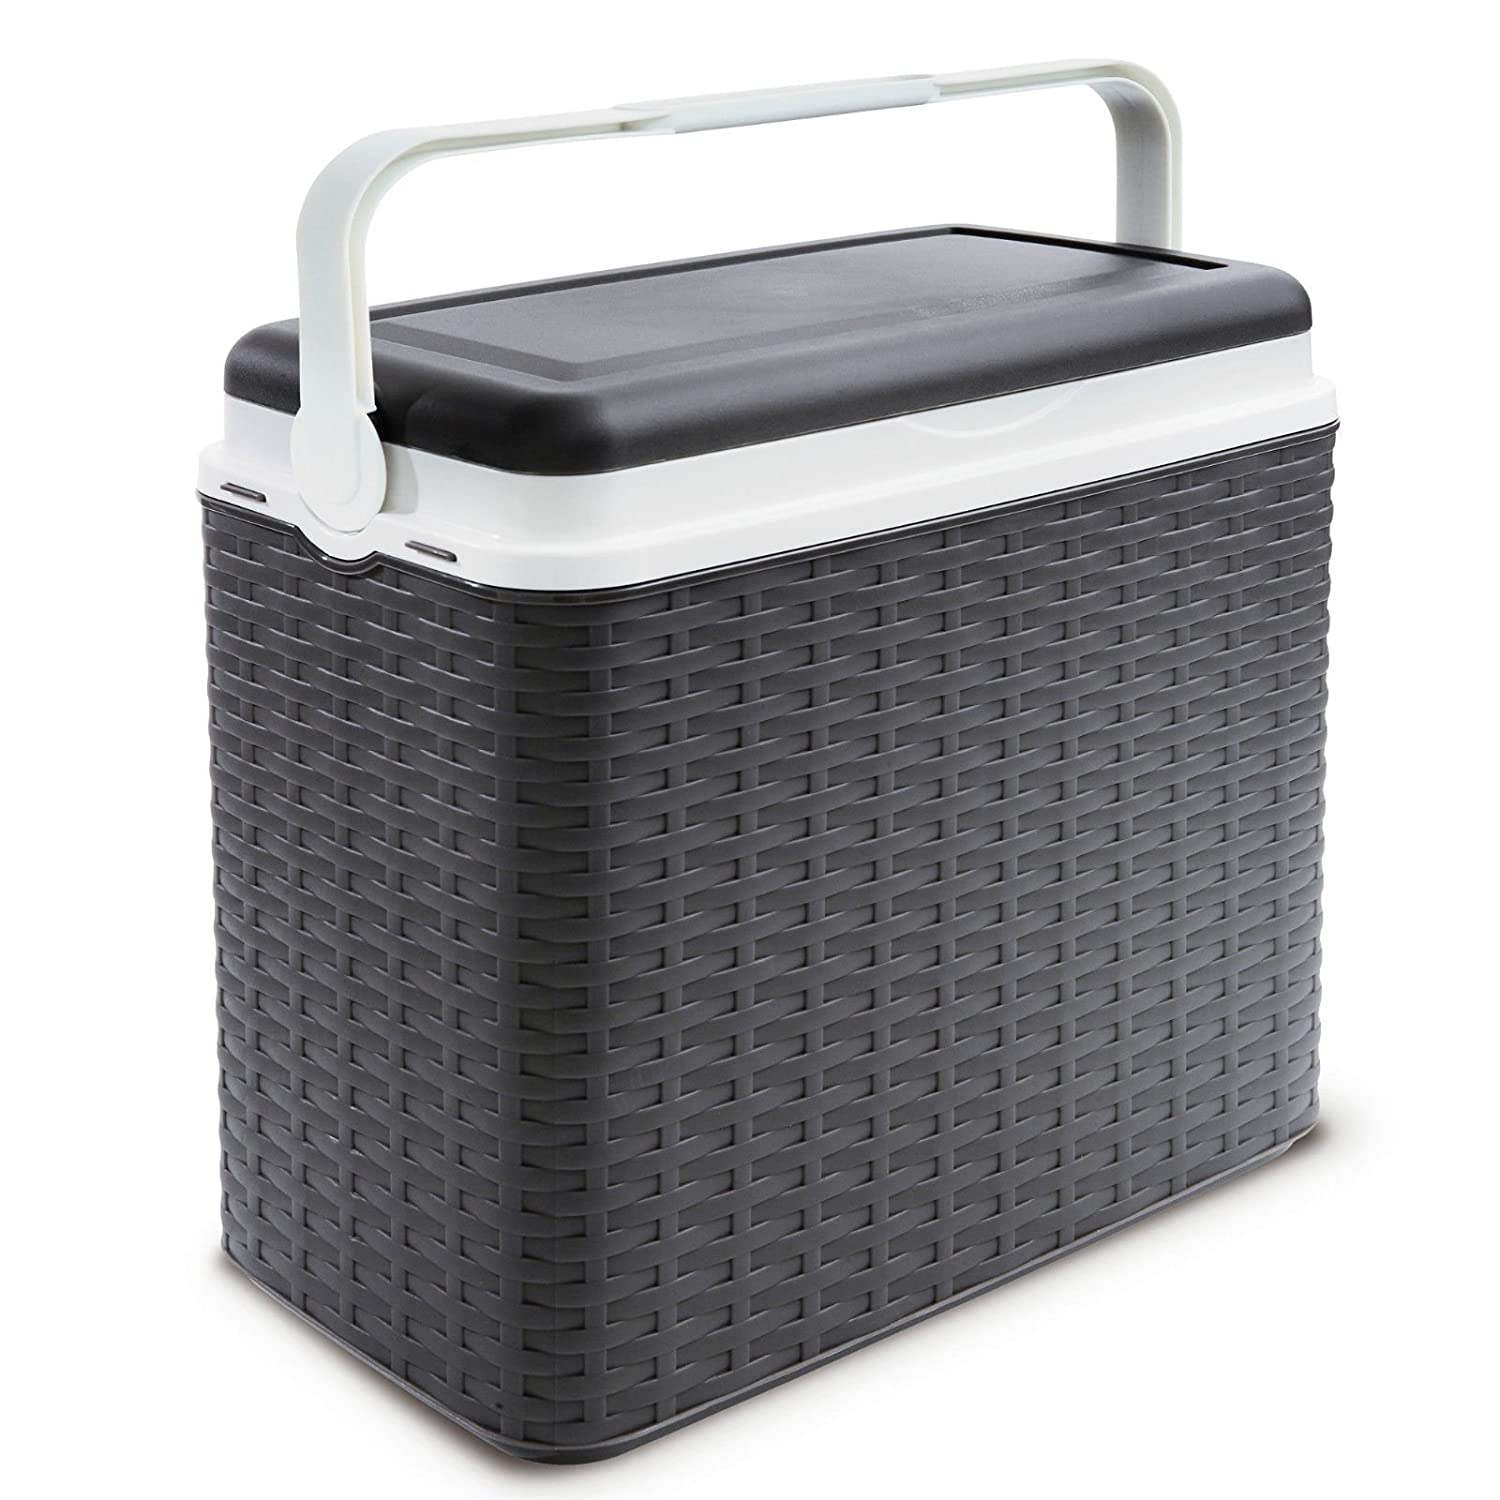 2 Ice Packs Large 24 Litre Cooler Rattan Box Camping Beach Lunch Picnic Insulated Food